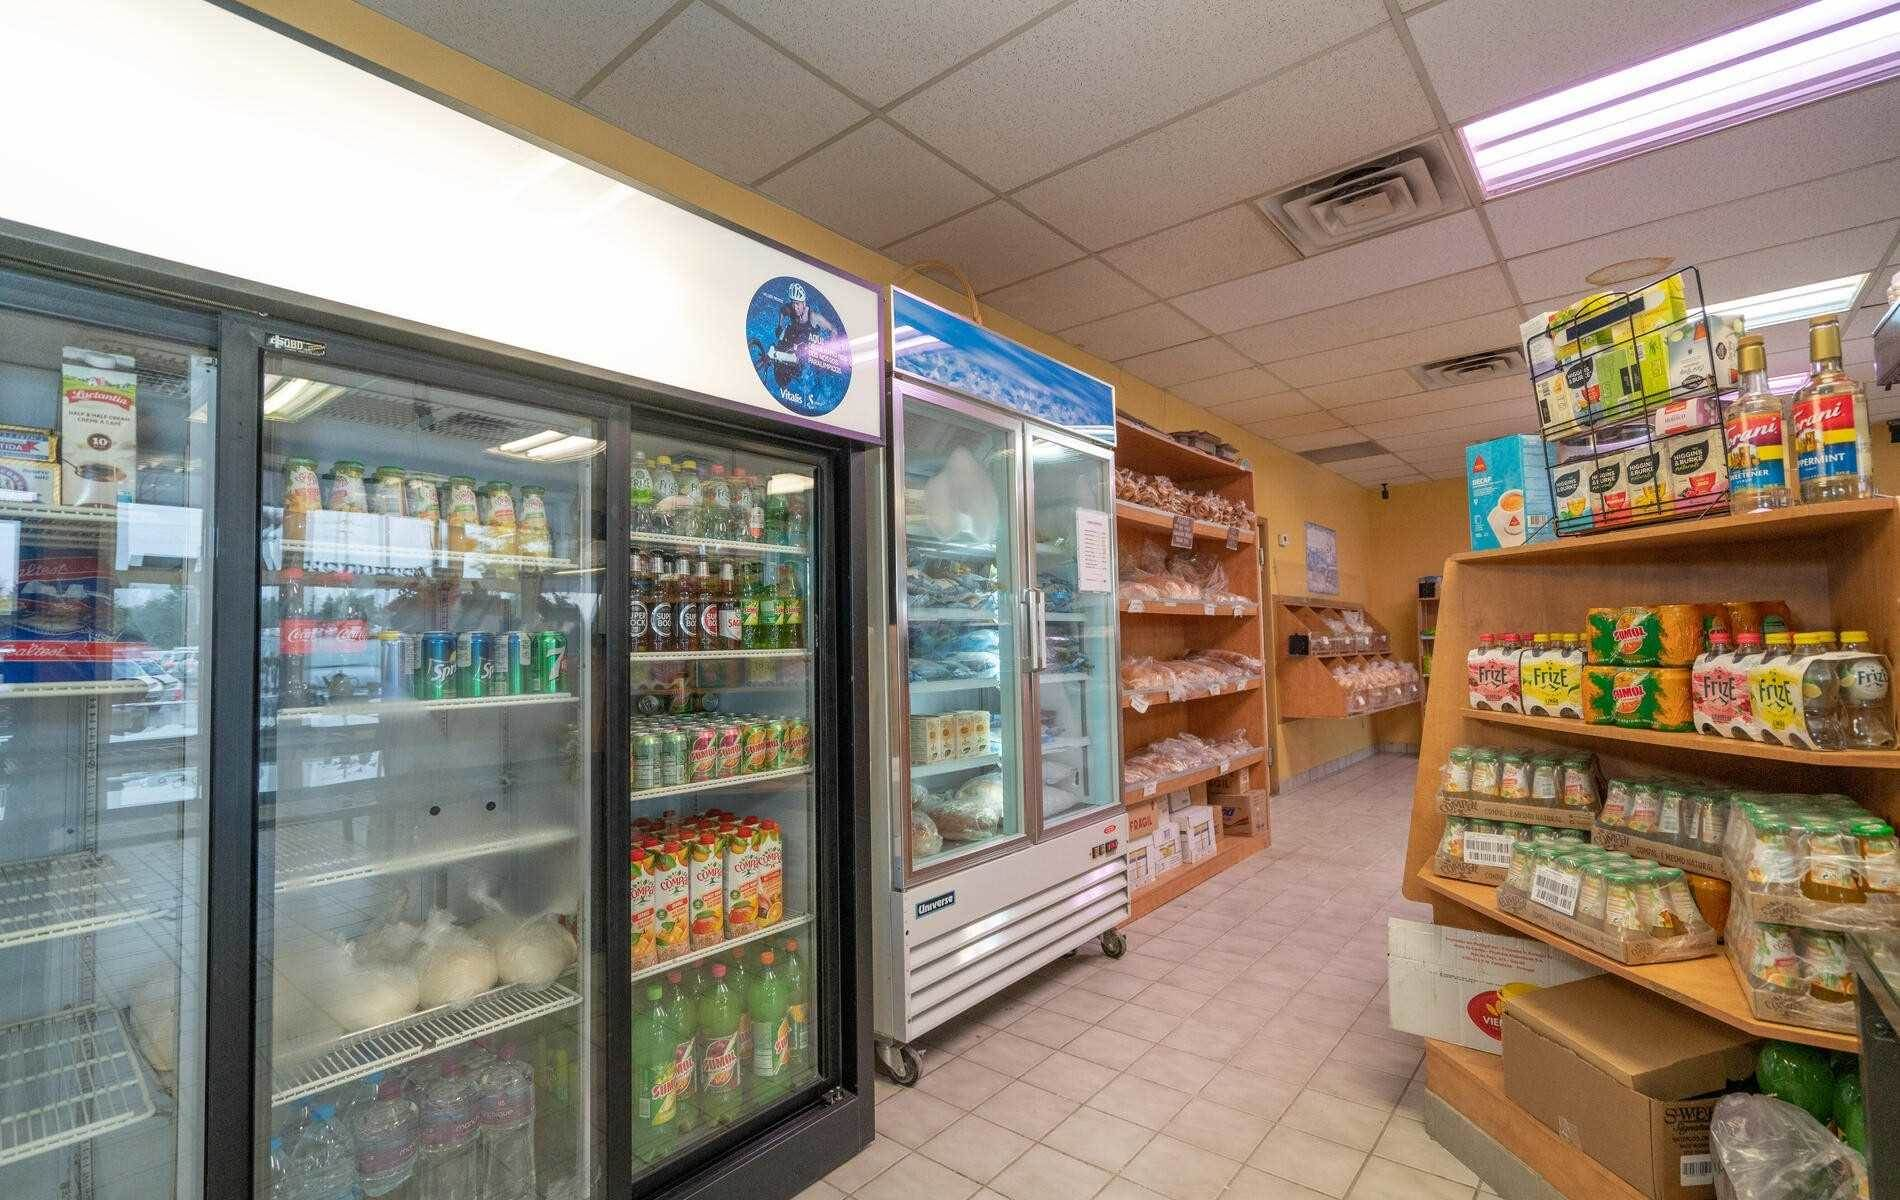 4 Mclaughlin Rd S in Brampton - Commercial For Sale : MLS# w5140894 Photo 6